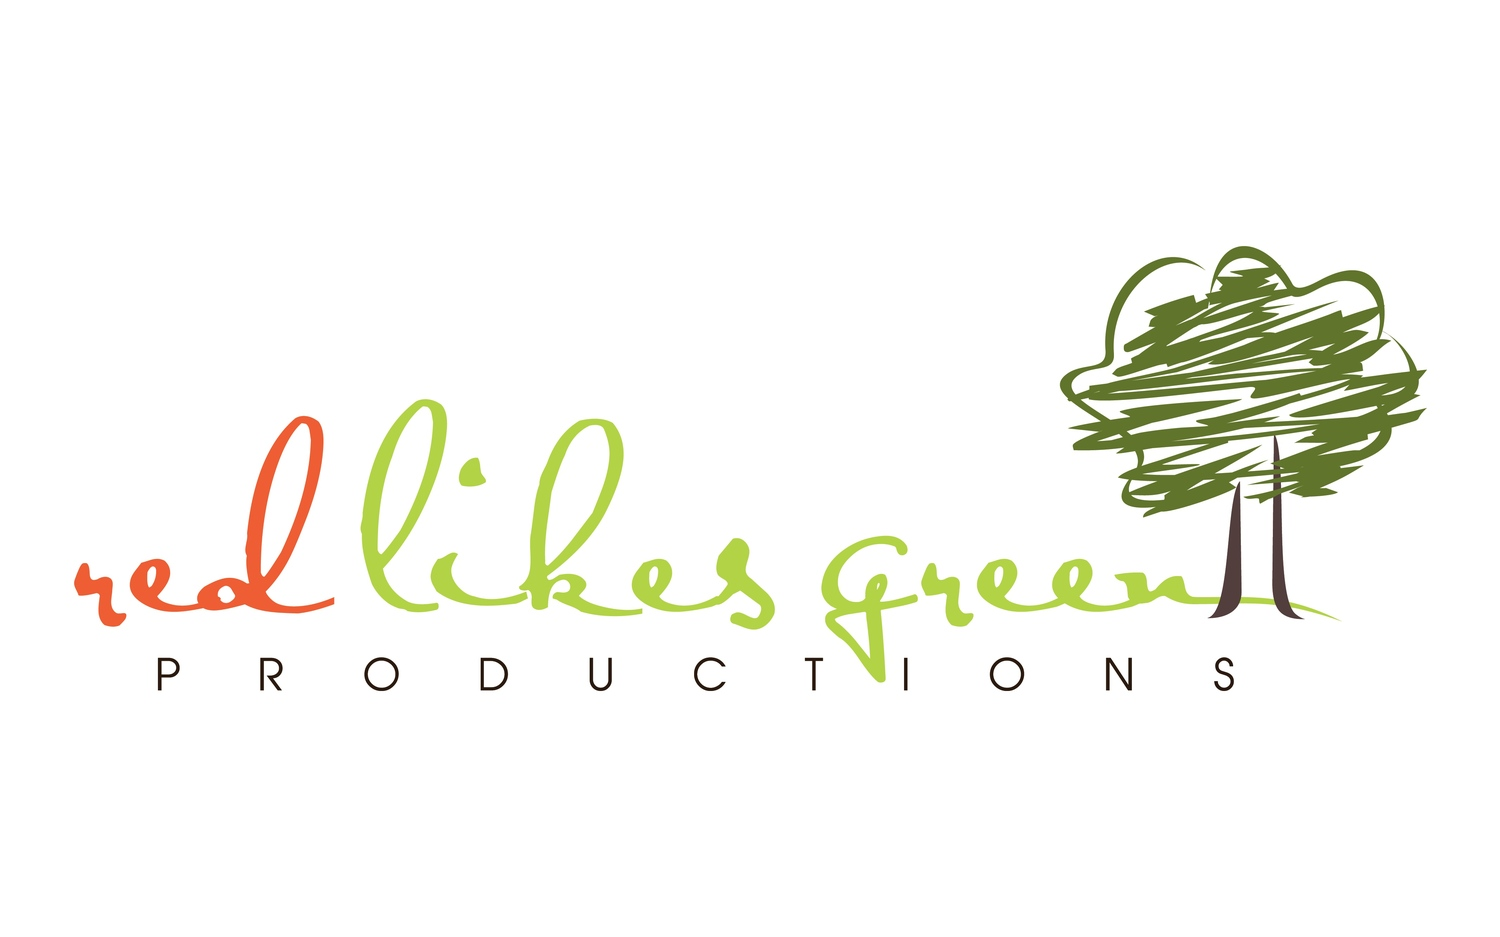 Red Likes Green Productions